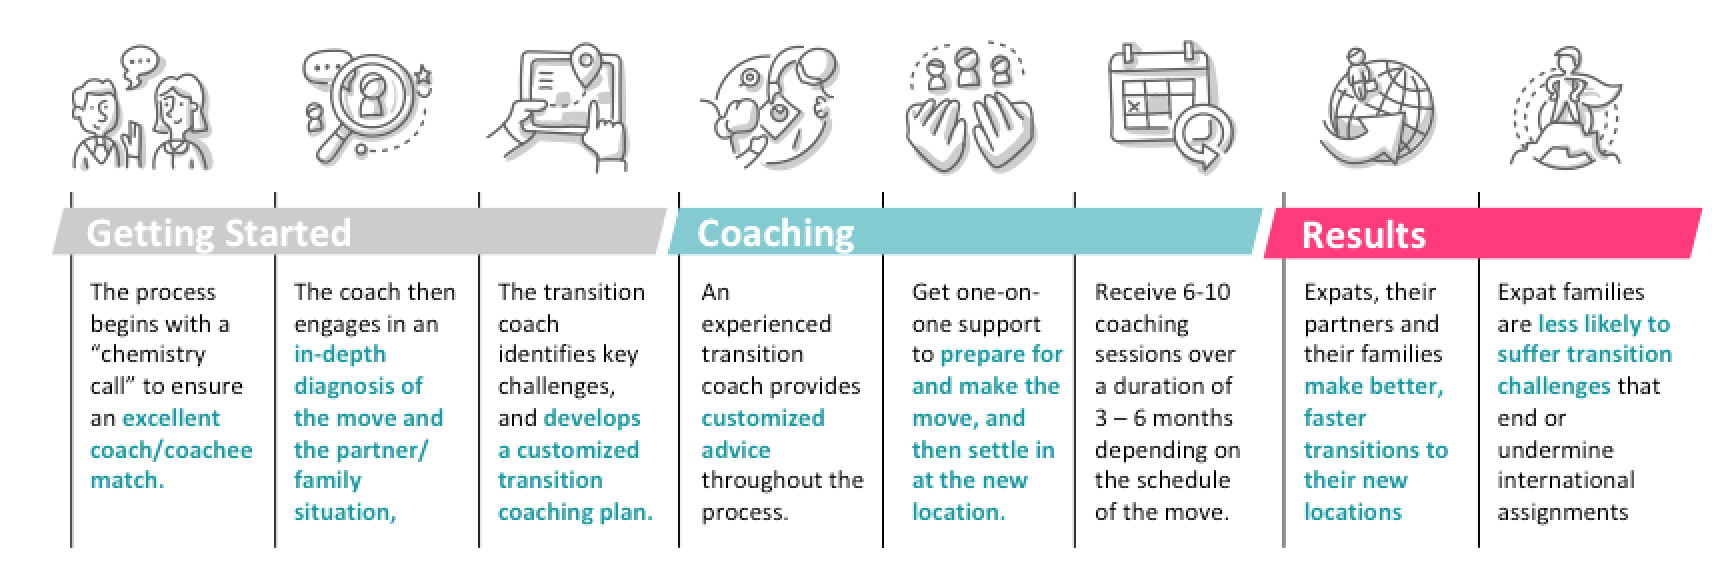 Coaching - Katia Vlachos - Expat Transition Coach